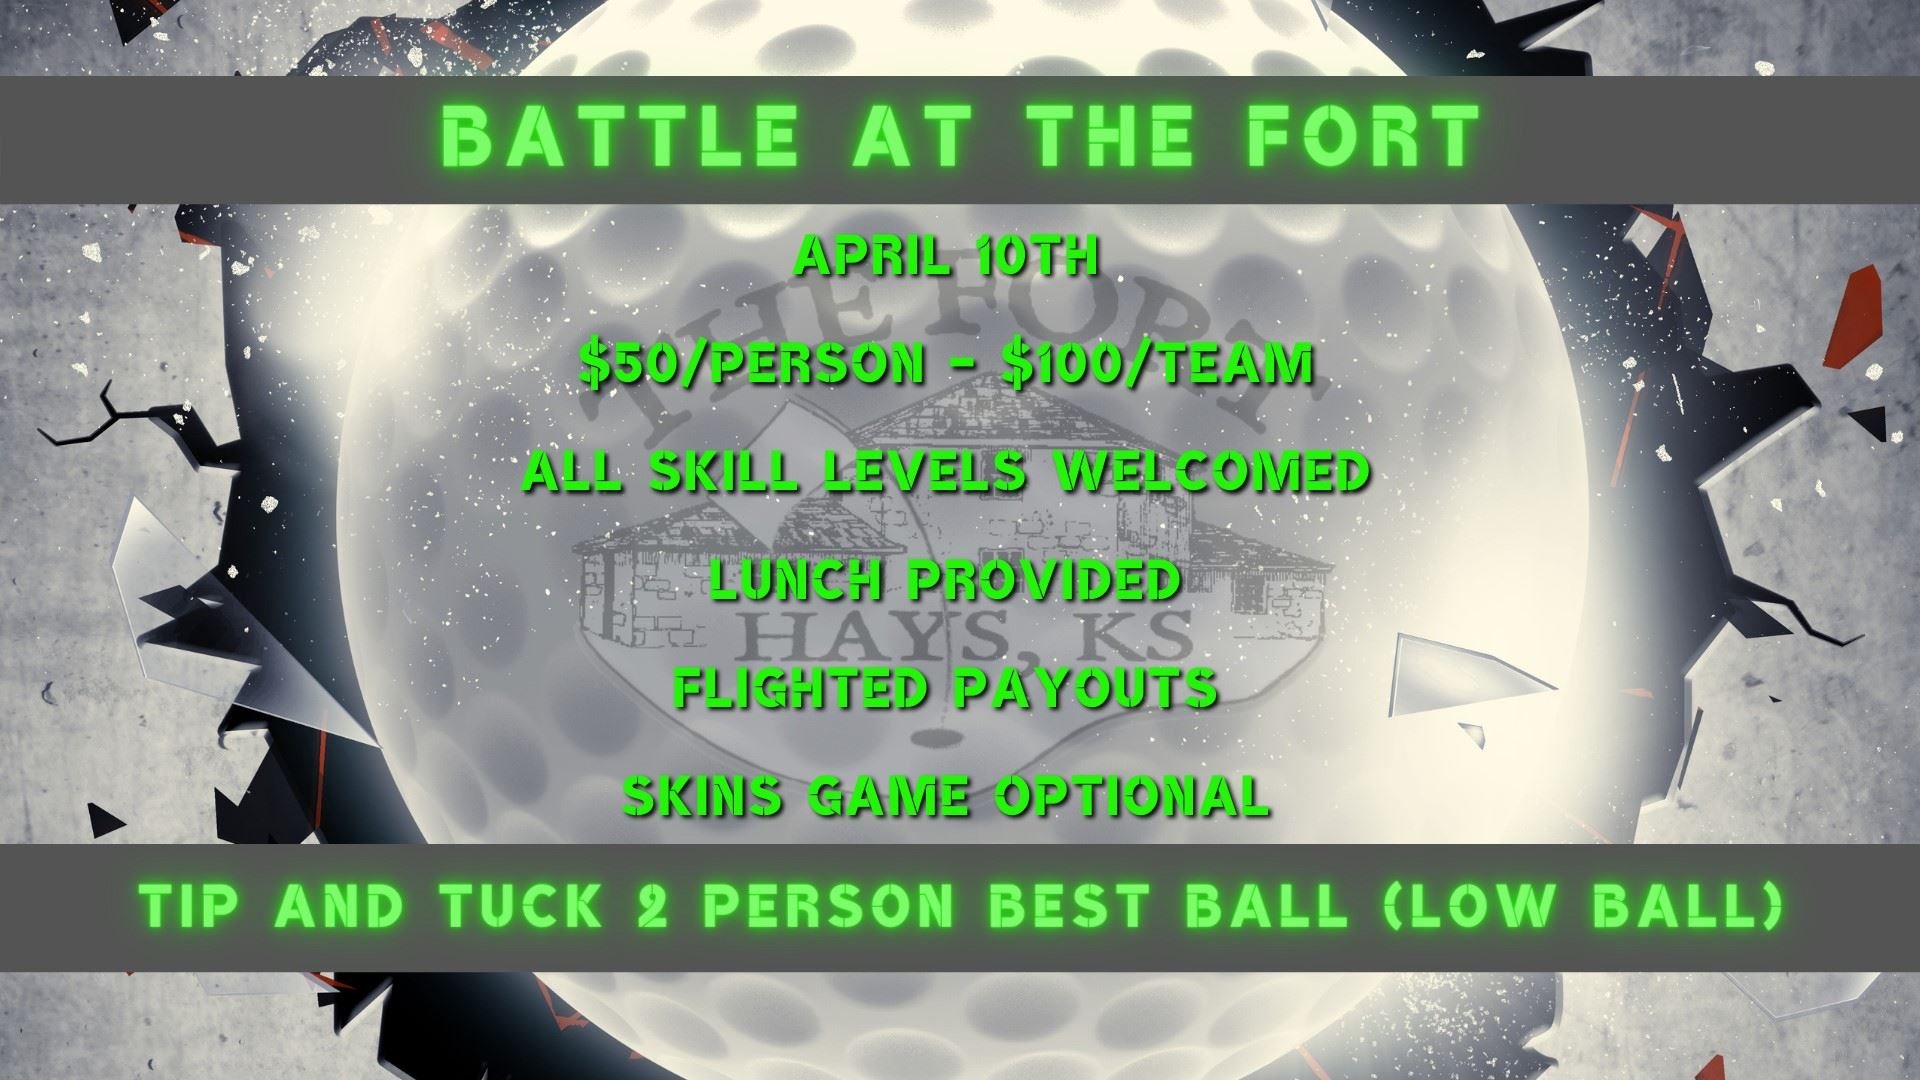 Tip and Tuck Battle at the Fort 2021